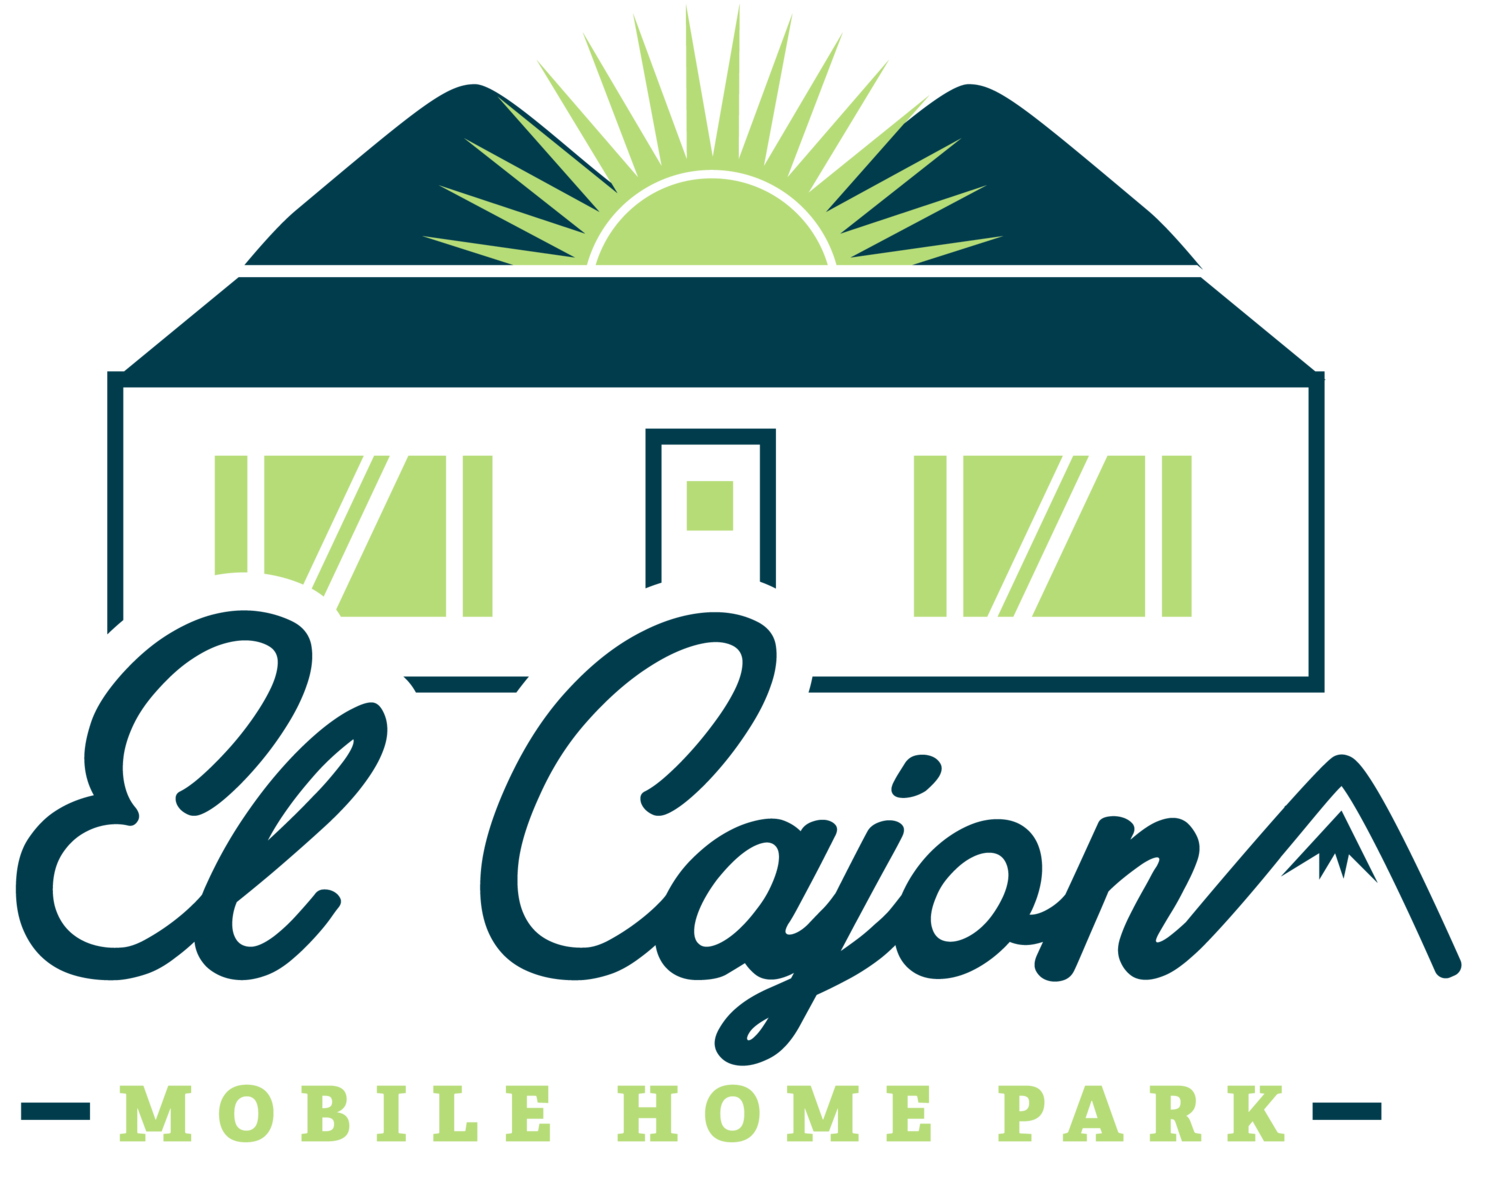 El Cajon Mobile Home Park